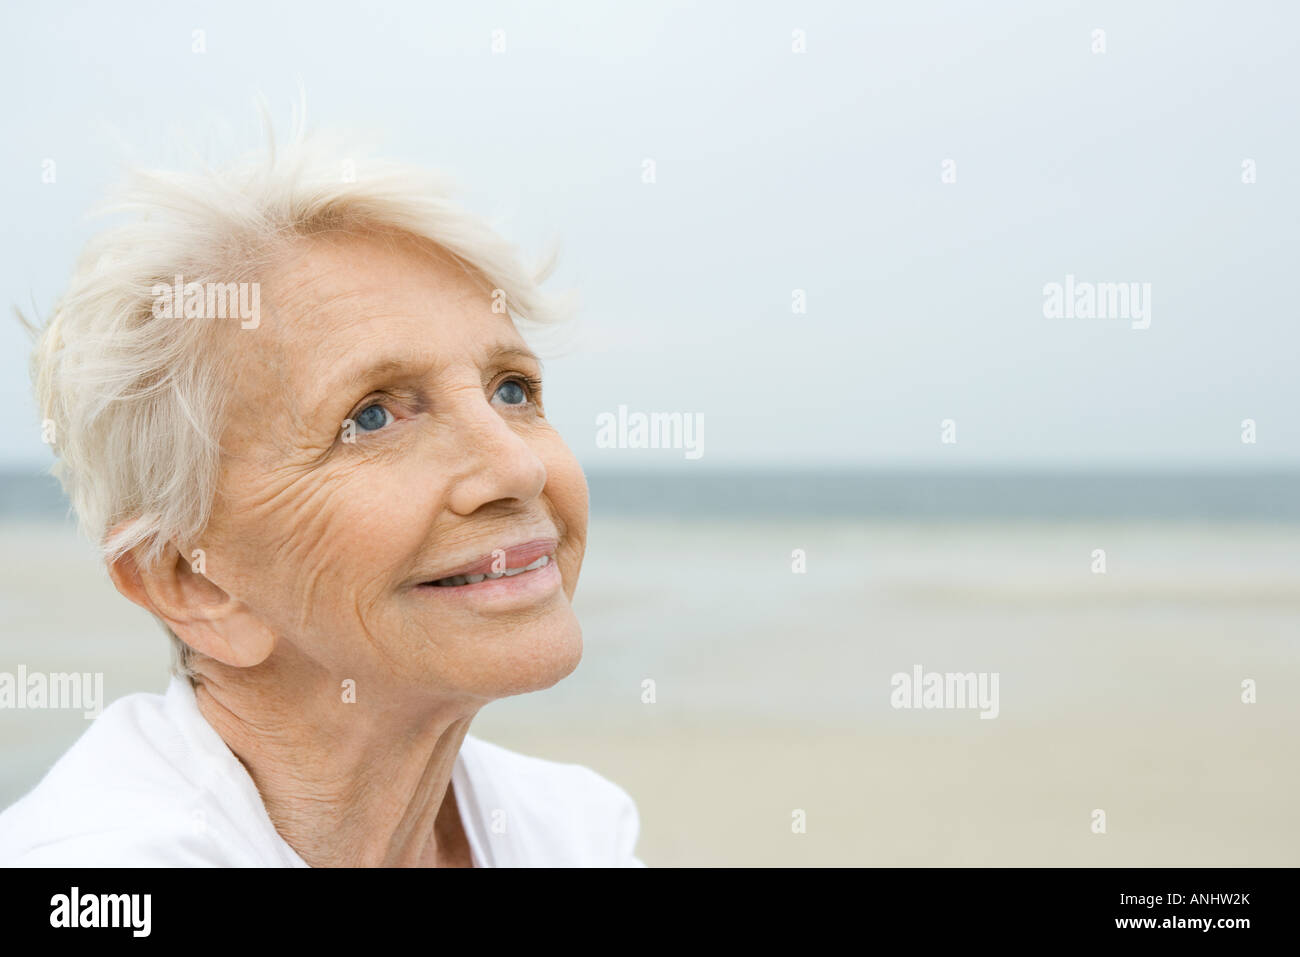 Senior woman smiling, looking up, beach in background - Stock Image